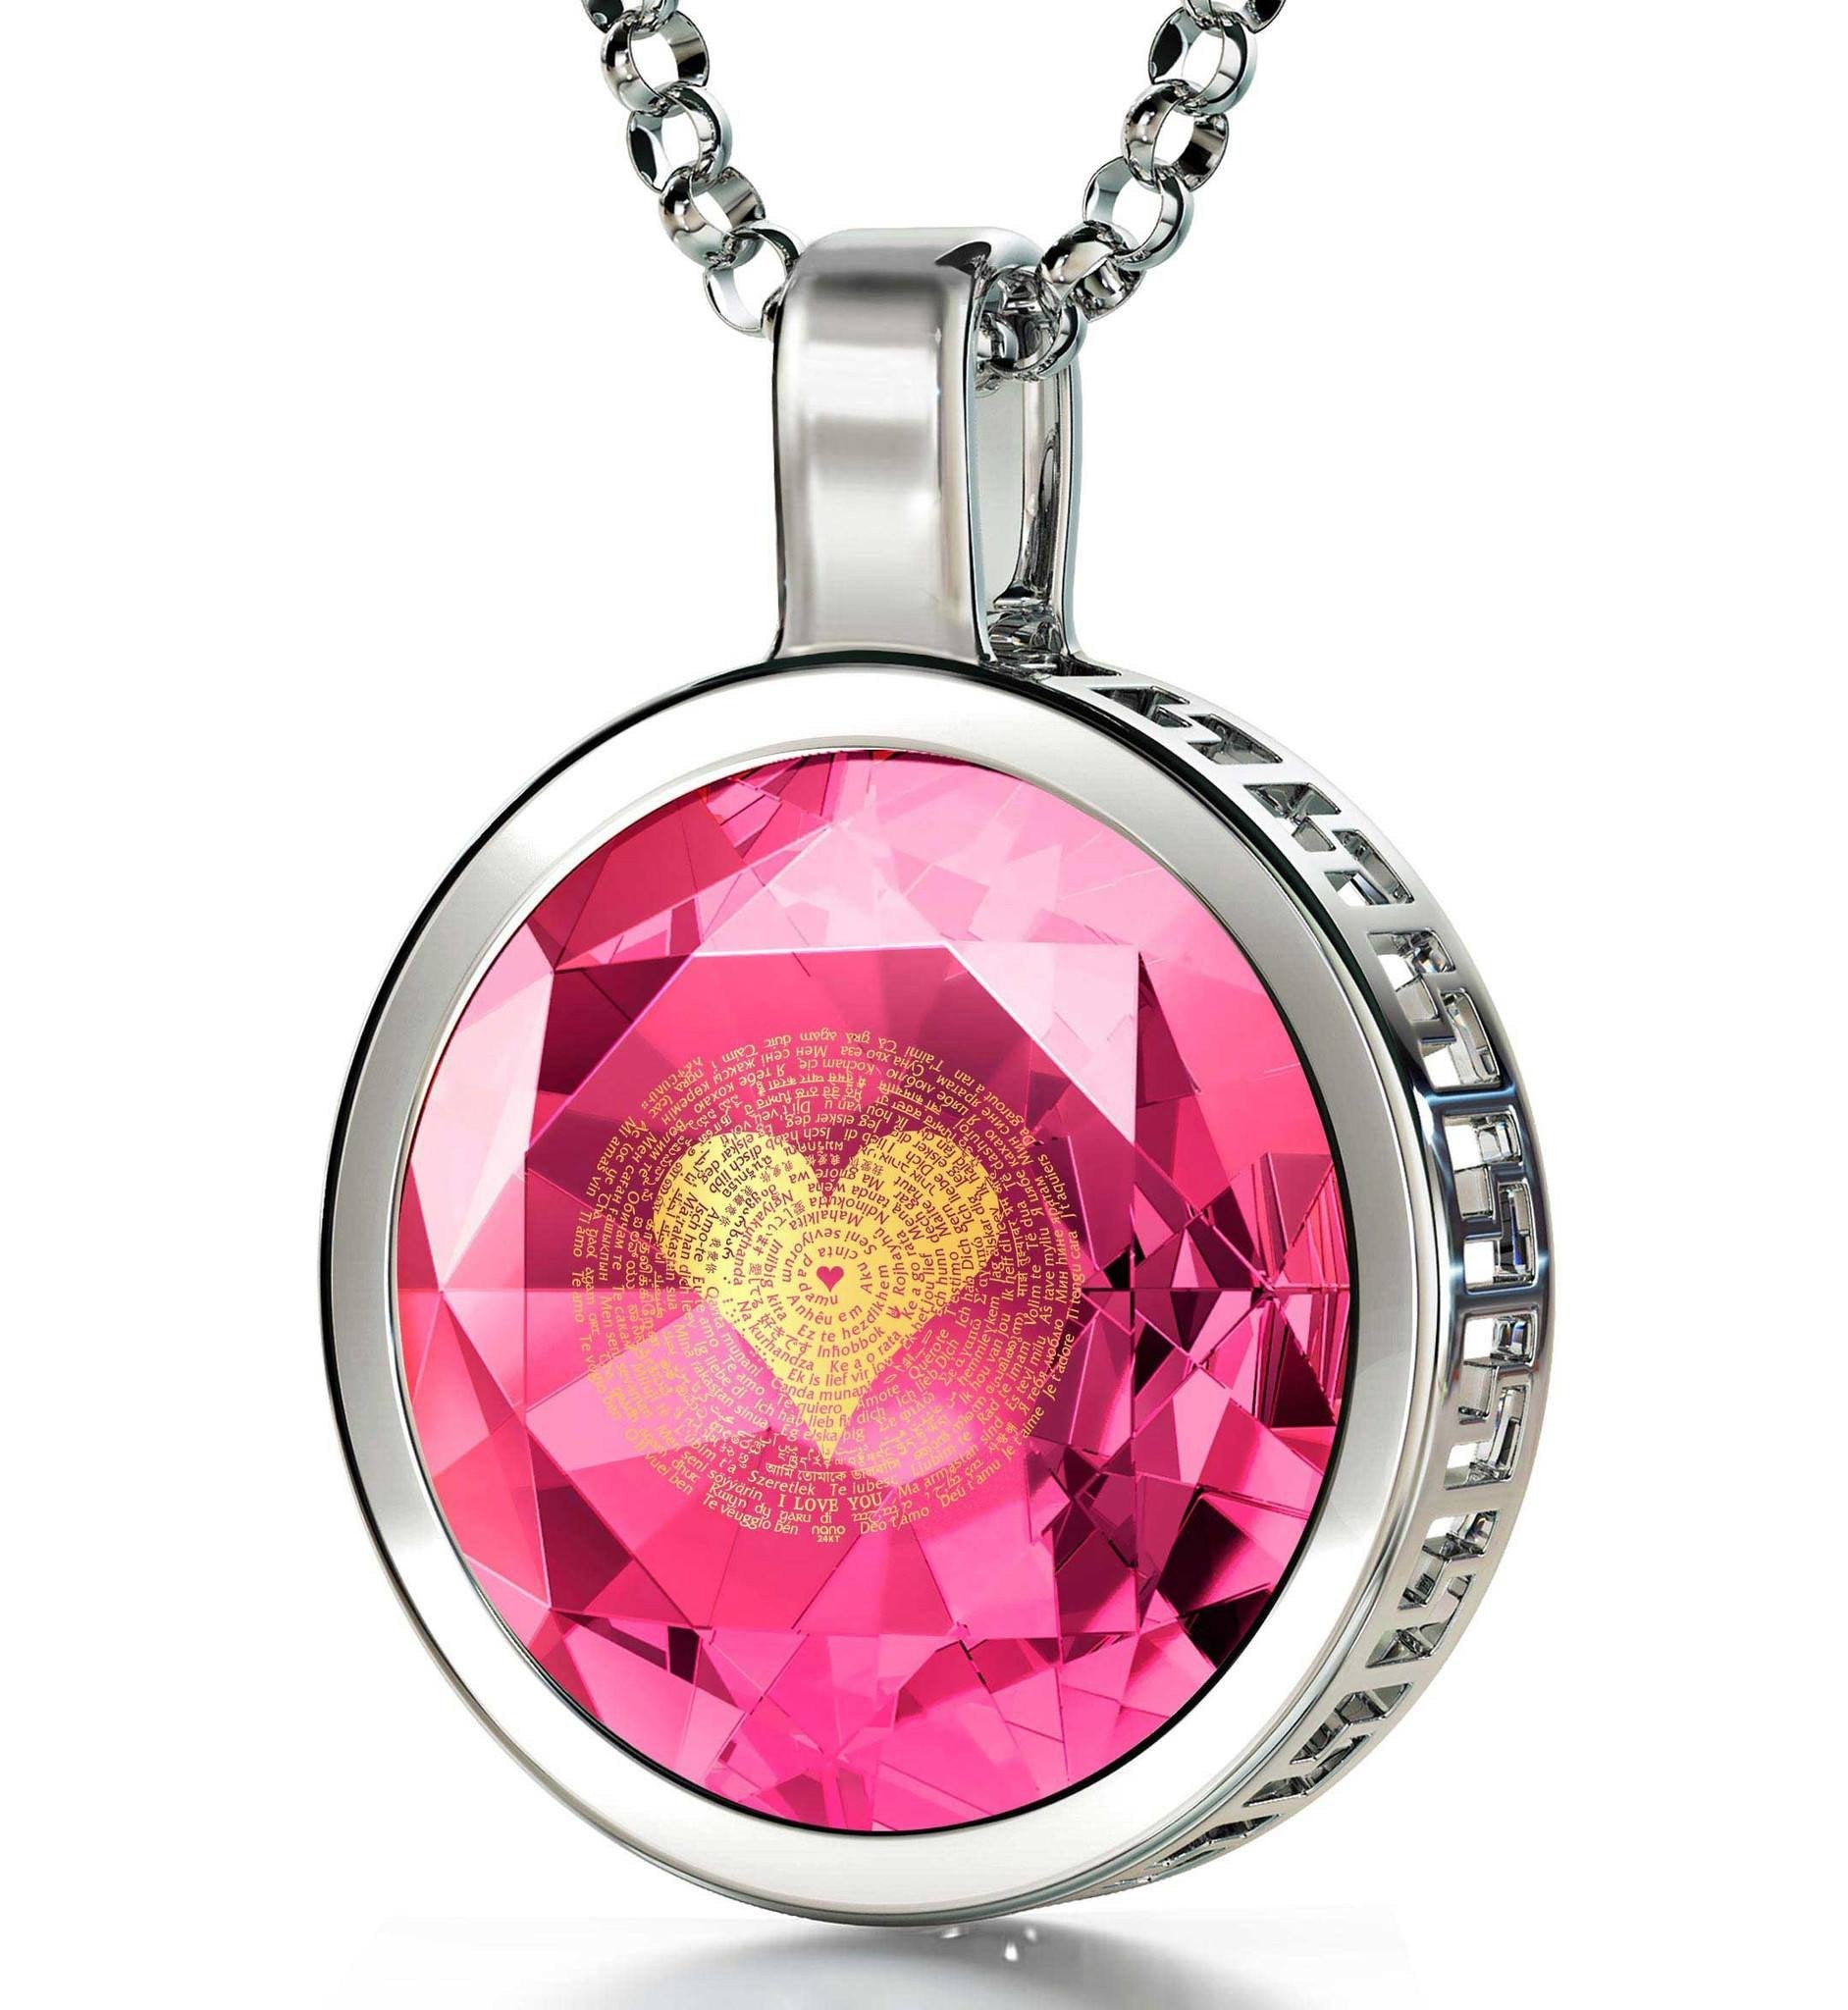 Top Gift Ideas for Women, Heart Necklaces for Girlfriend, Engraved Pendants, Anniversary Presents for Her by Nano Jewelry